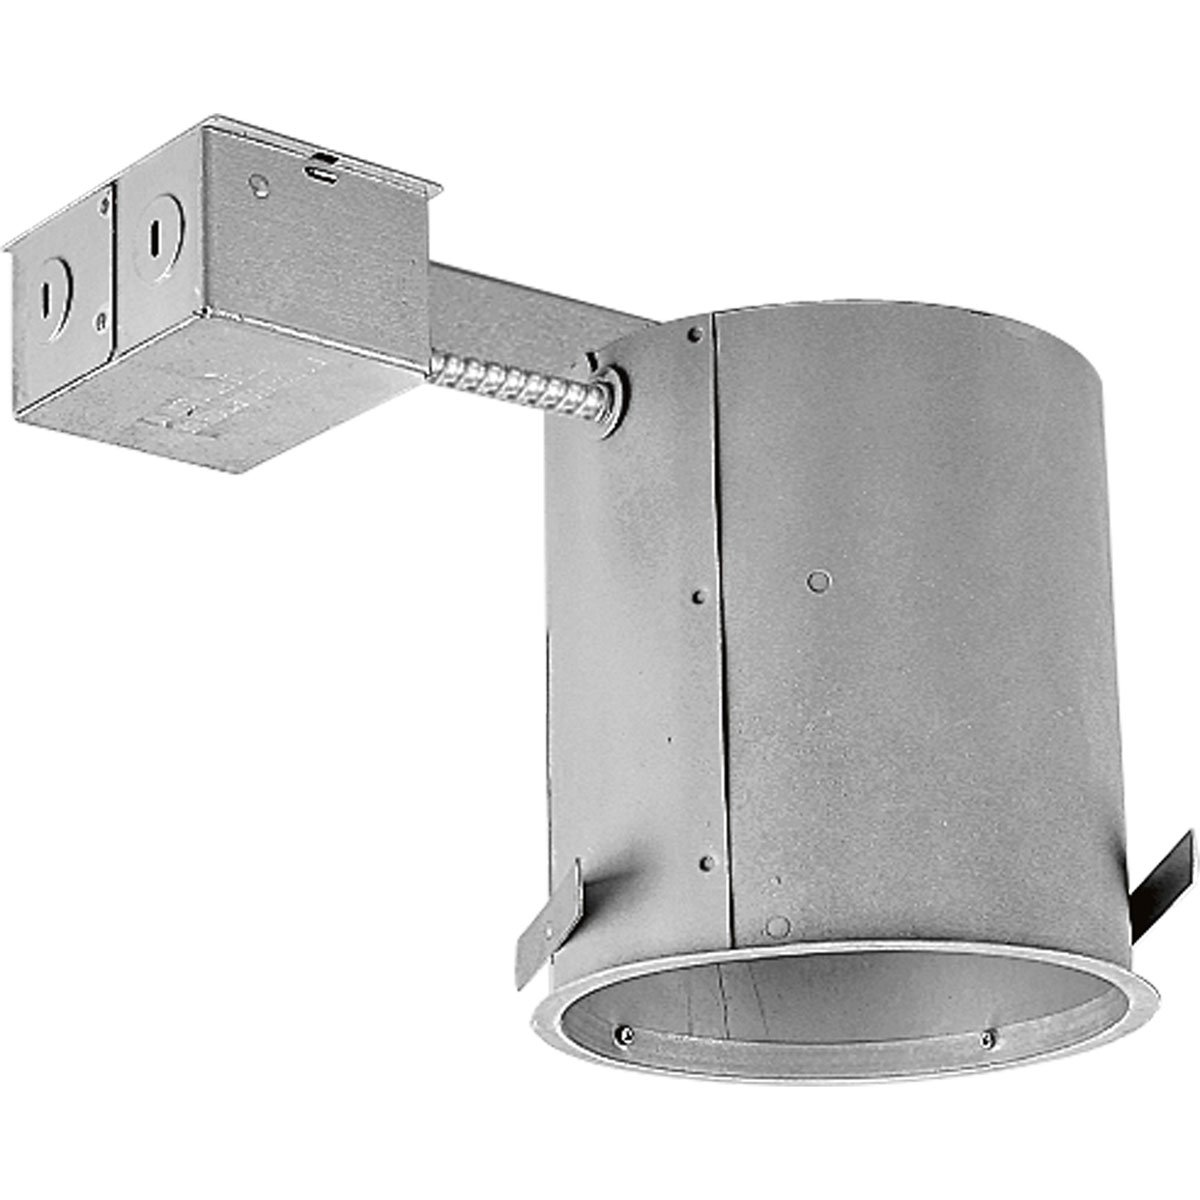 Progress lighting 94187tg0 remodel recessed lighting housing for use progress lighting 94187tg0 remodel recessed lighting housing for use in existing ceilings recessed light fixture housings amazon aloadofball Image collections